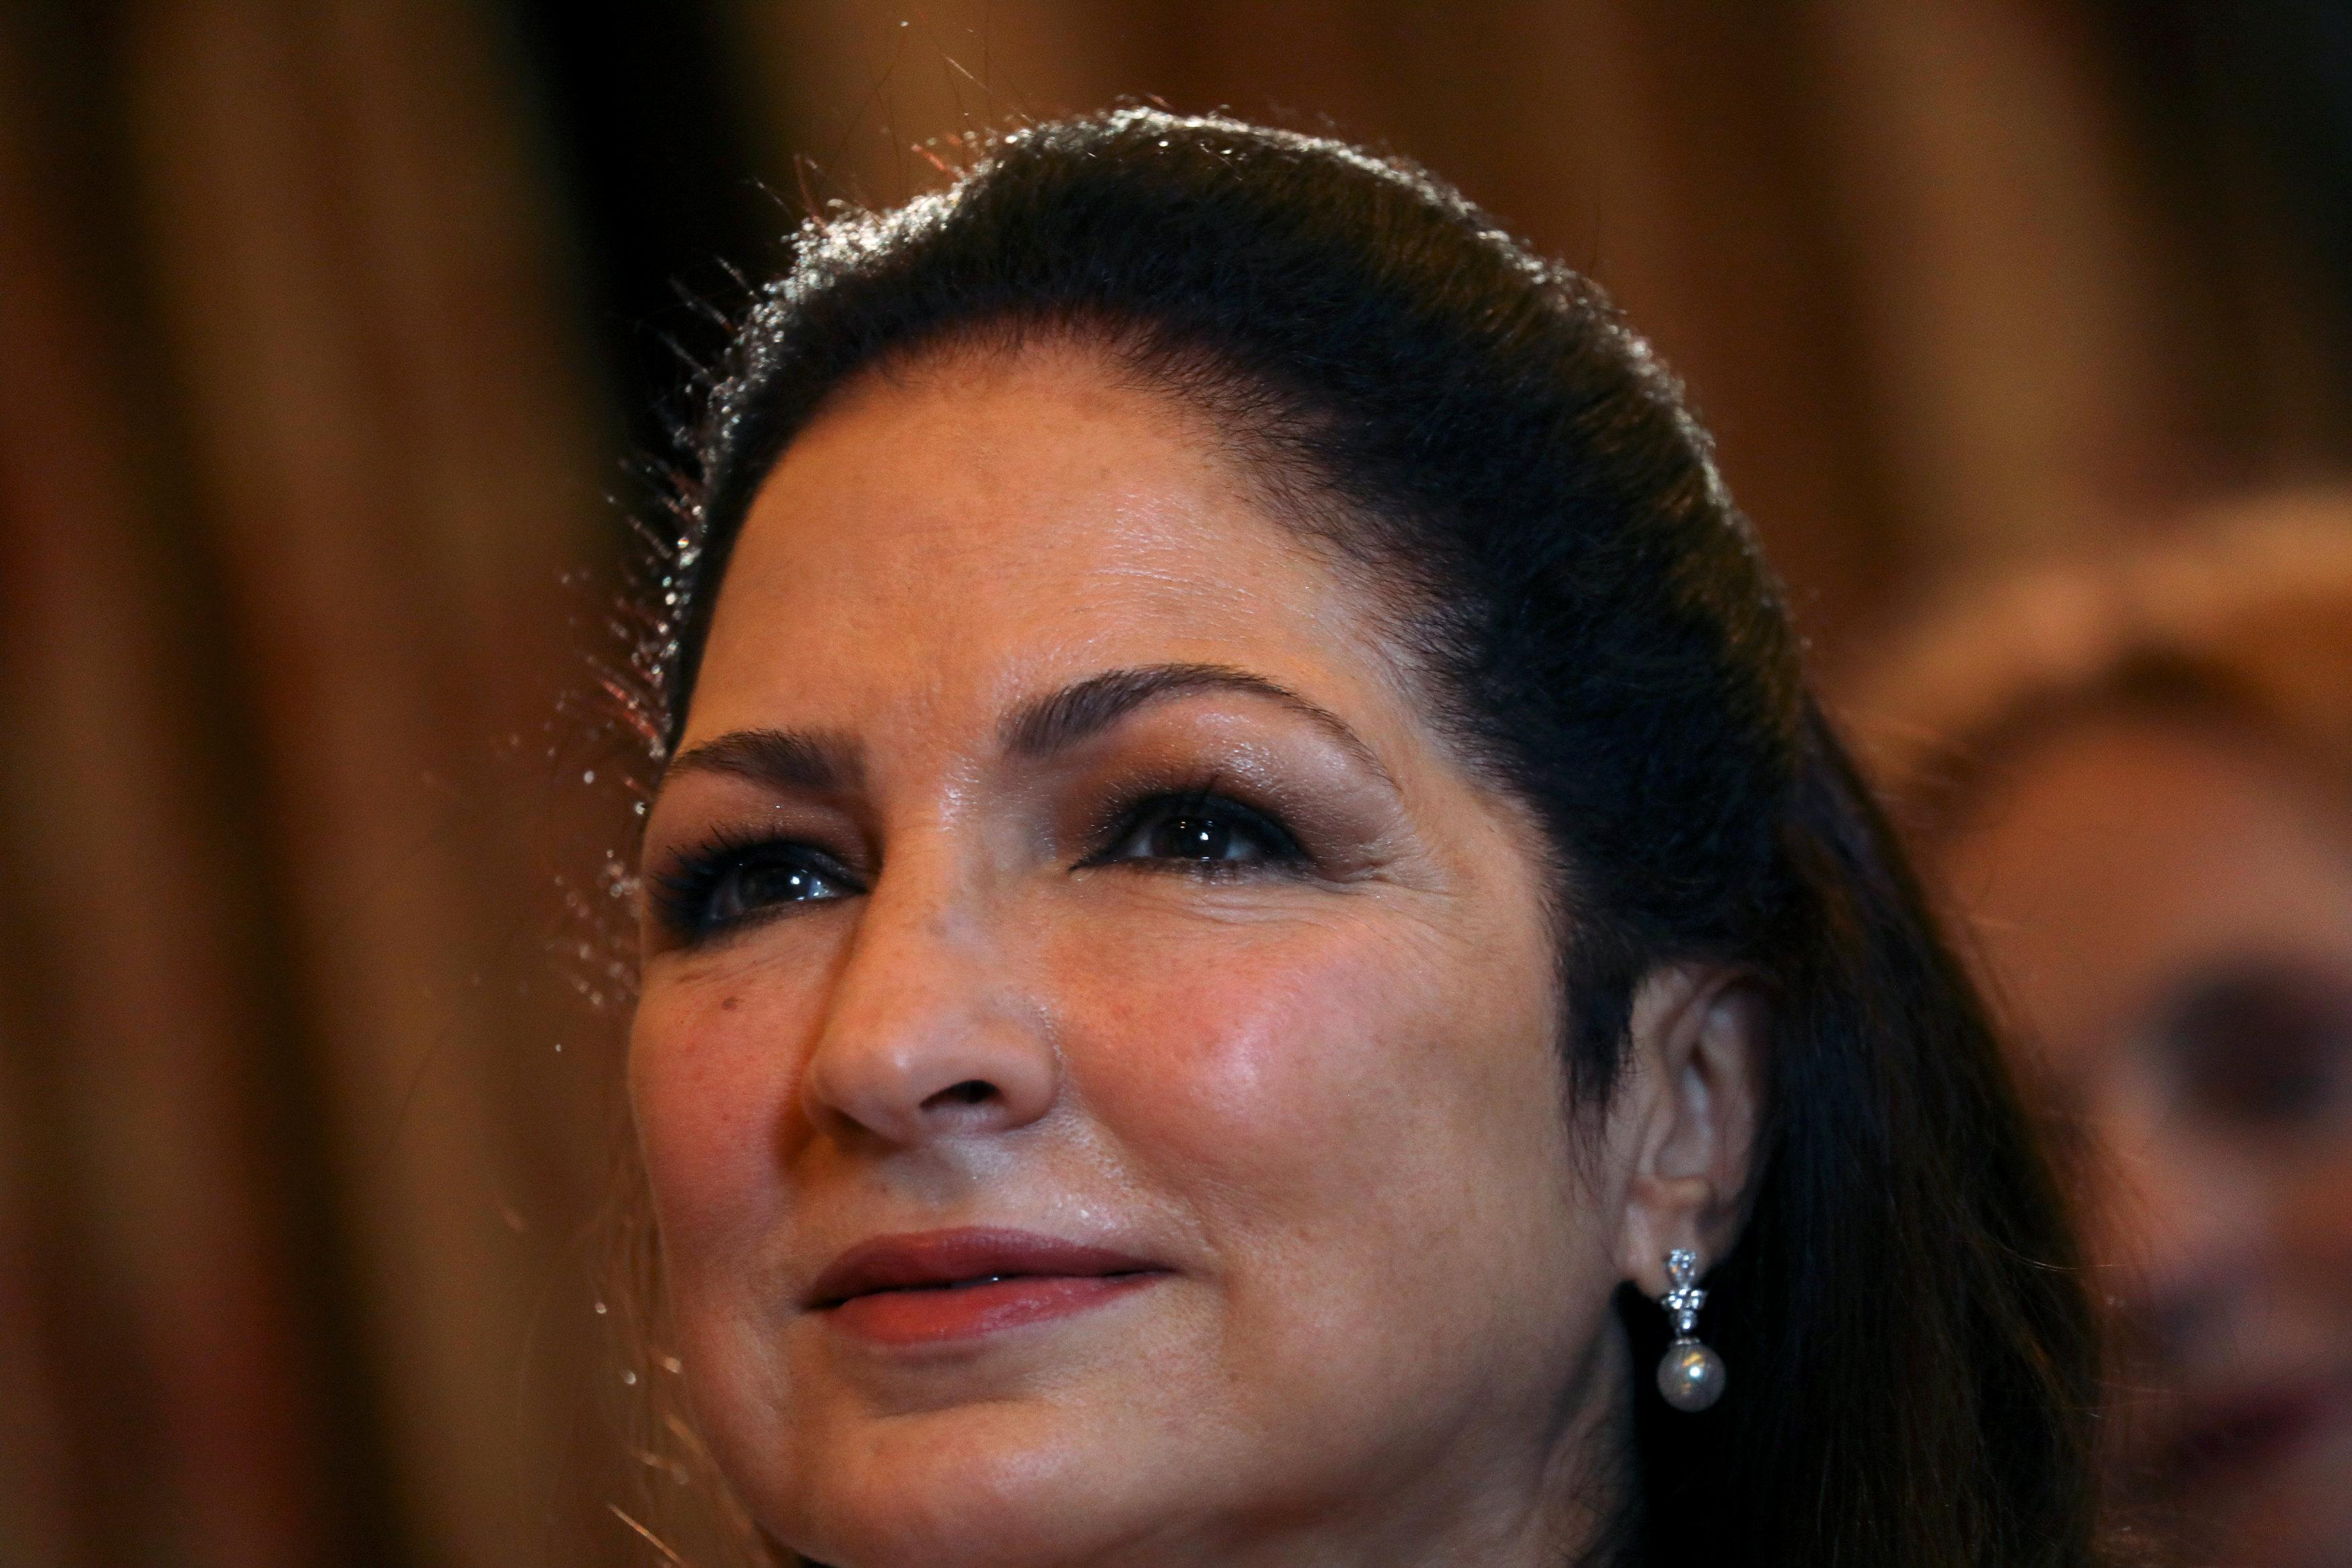 Cuban-American singer Gloria Estefan waits to be awarded with Spain's Gold Medal of Merit for the Arts from Spain's Culture Minister Jose Guirao Cabrera in Madrid, Spain, July 23, 2018. Susana Vera